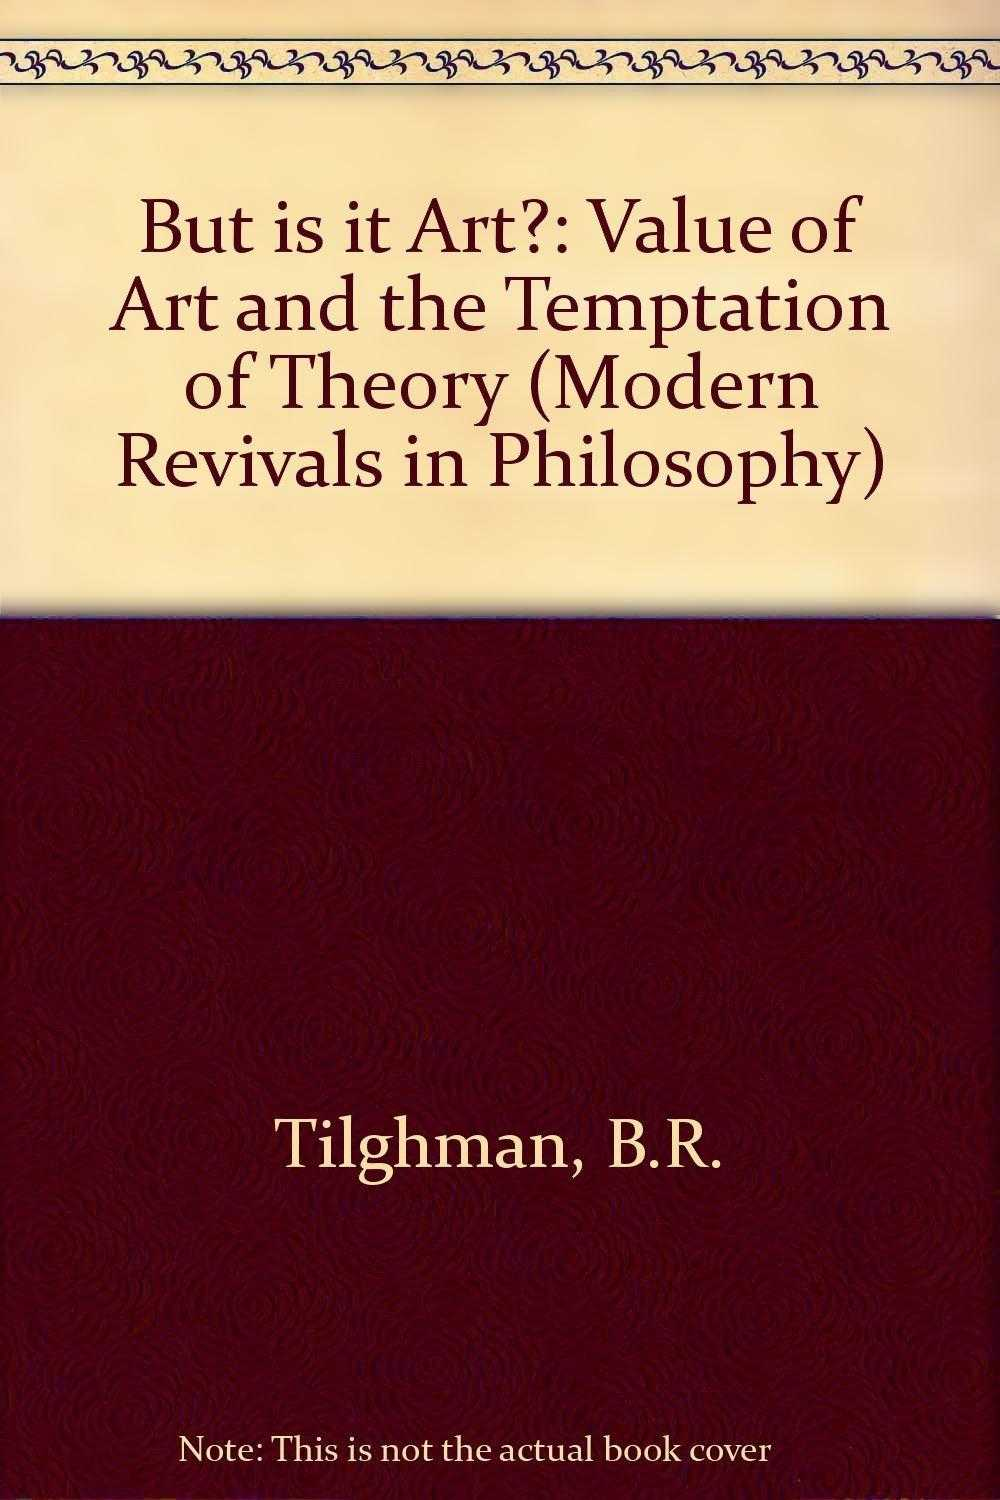 But is it Art?: Value of Art and the Temptation of Theory (Modern Revivals in., Tilghman, B. R.